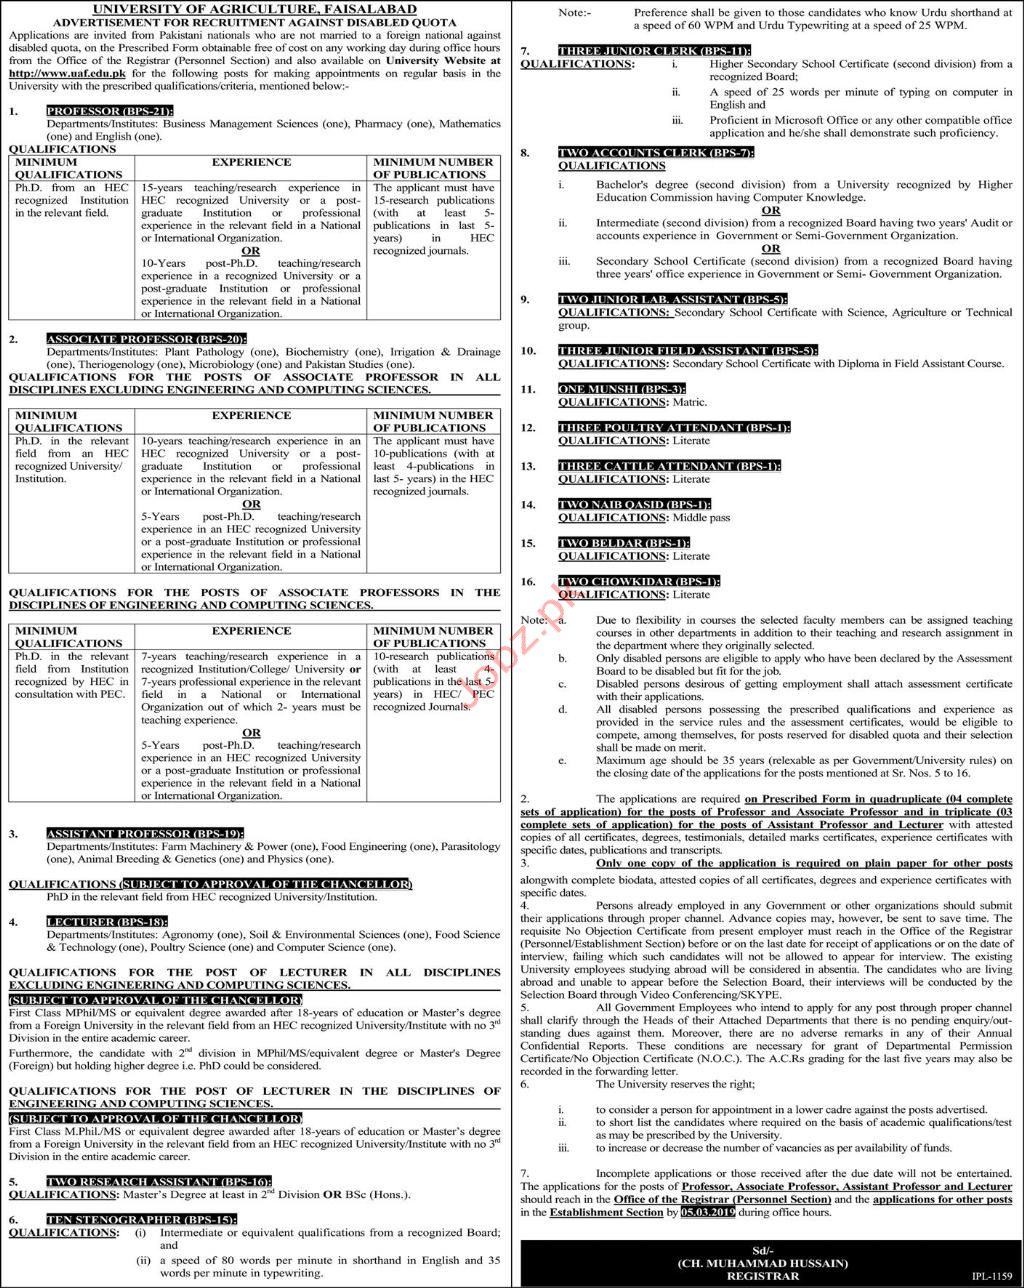 University of Agriculture Jobs 2019